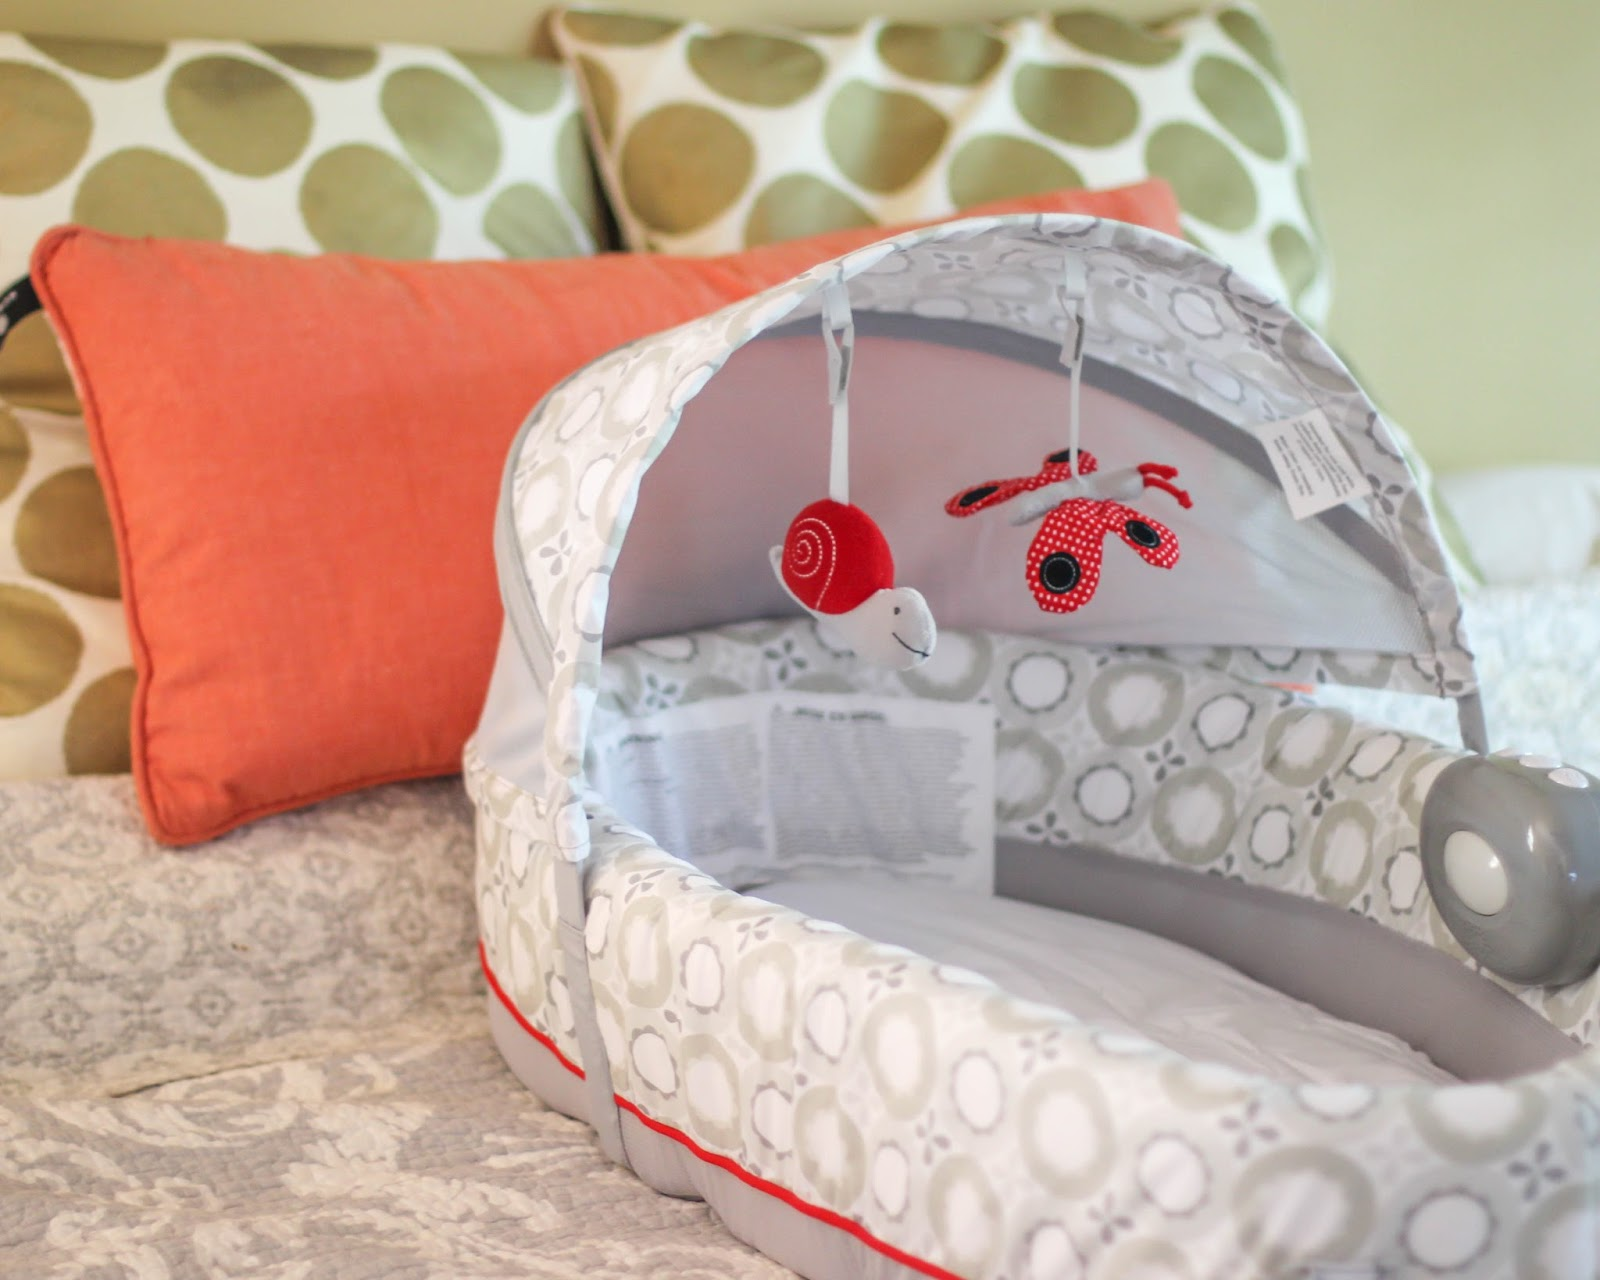 6 New Baby Necessities: Part 1 (Sleep and Health)